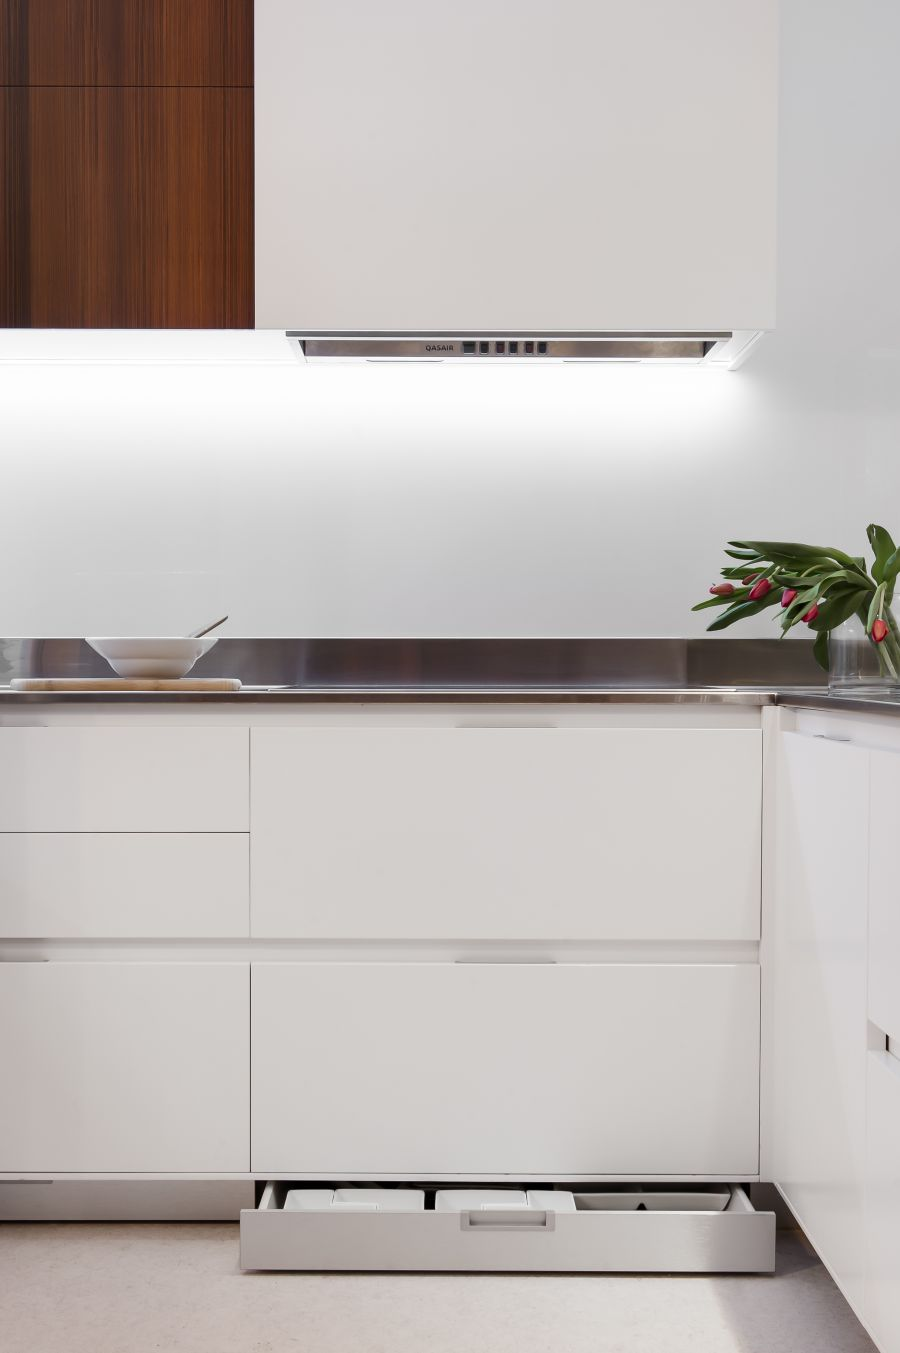 Sleek kitchen storage shelves in white